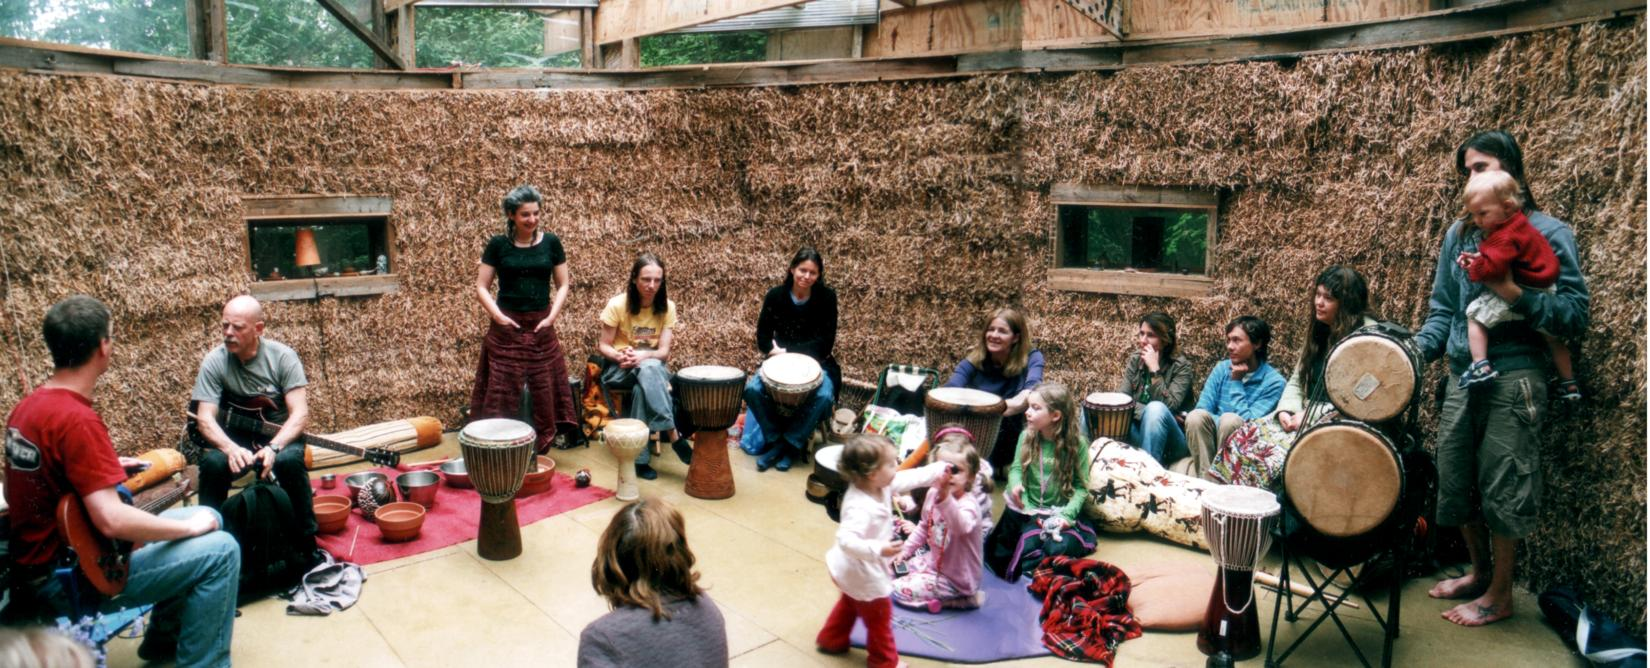 [ Music Children in The Strawbale Studio ]